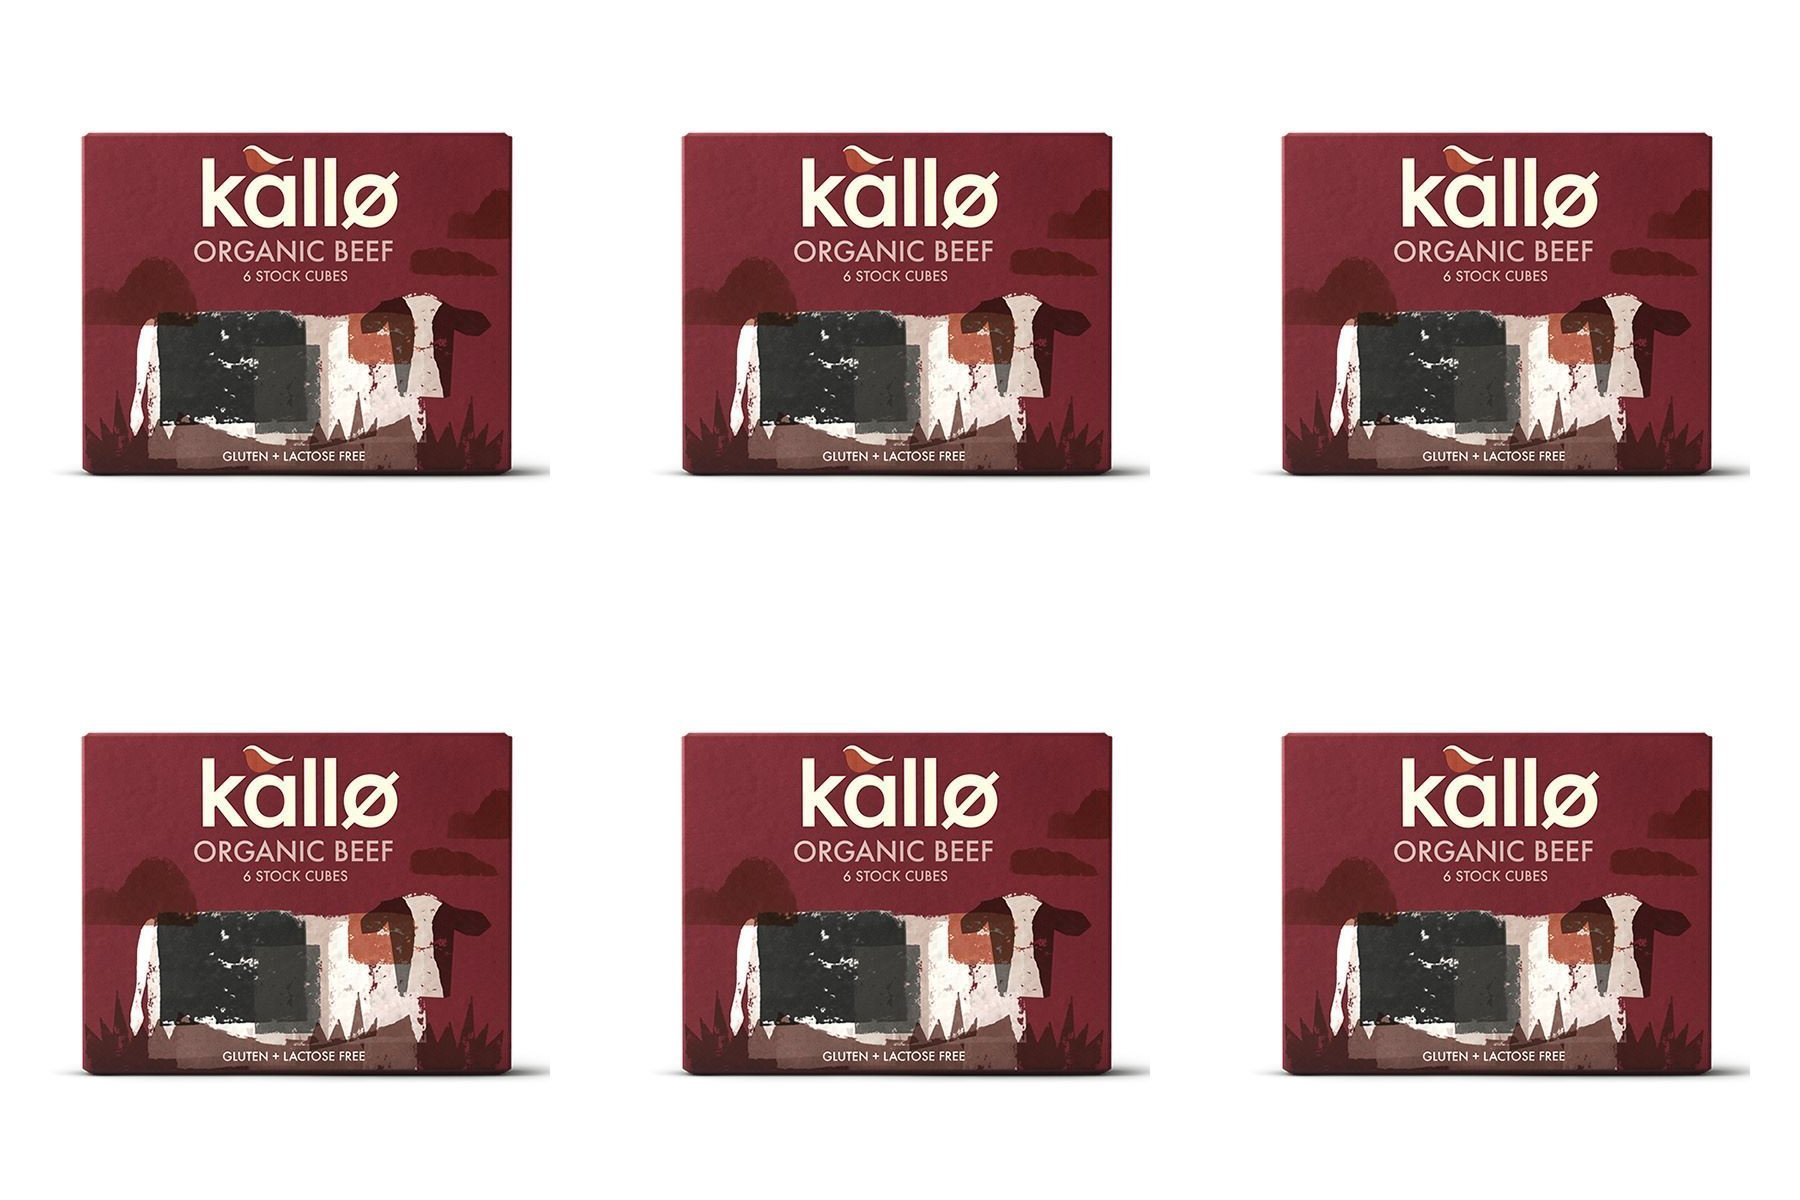 (6 PACK) - Kallo Beef Stock Cubes - Low Salt & Organic| 51 g |6 PACK - SUPER SAVER - SAVE MONEY